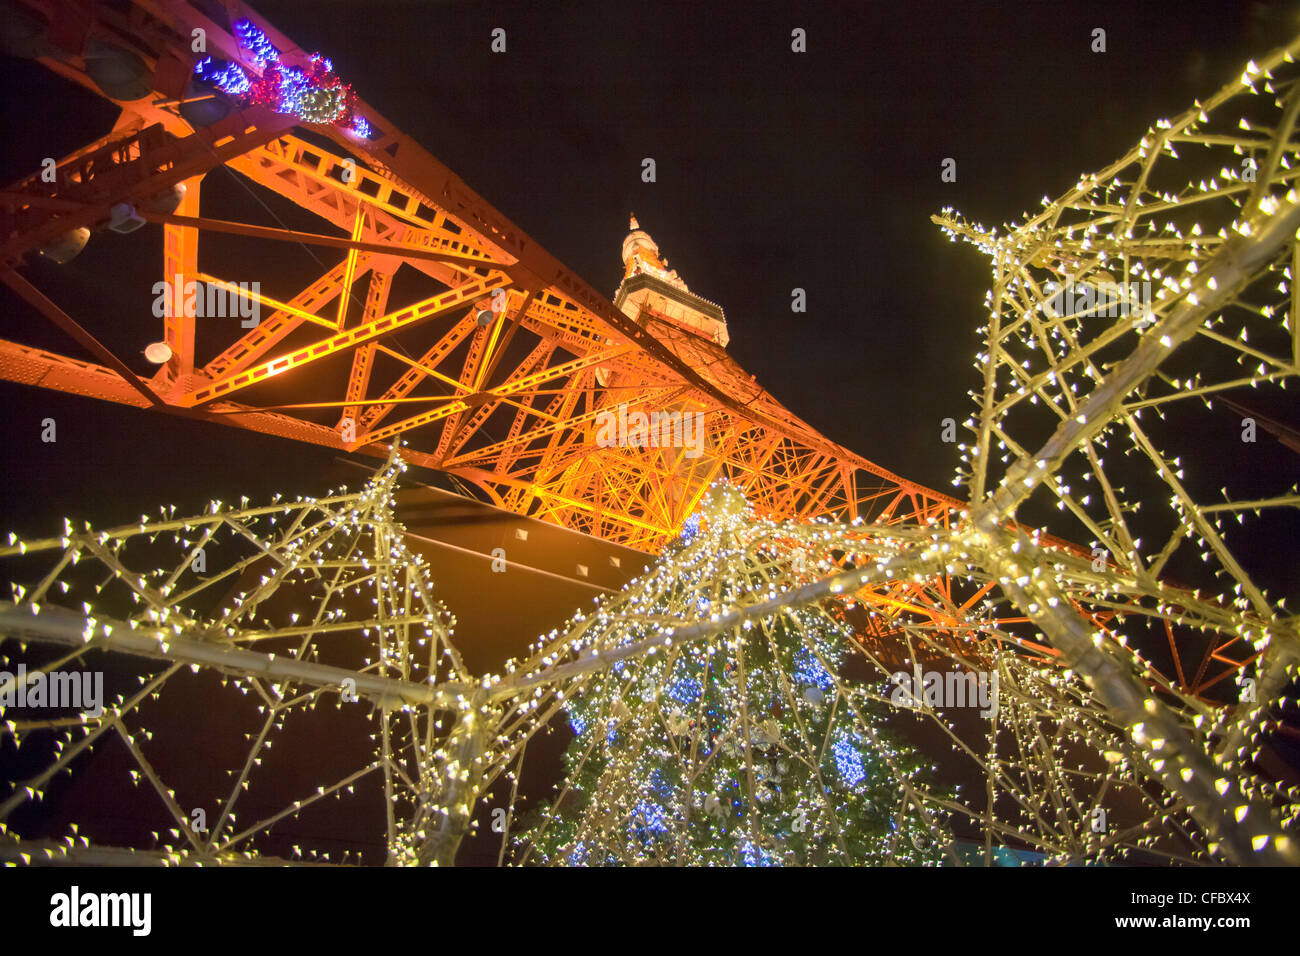 Japan, Asia, Tokyo, city, Tokyo Tower, architecture, illumination, iron, red, steel, tower, night, lights, Christmas - Stock Image